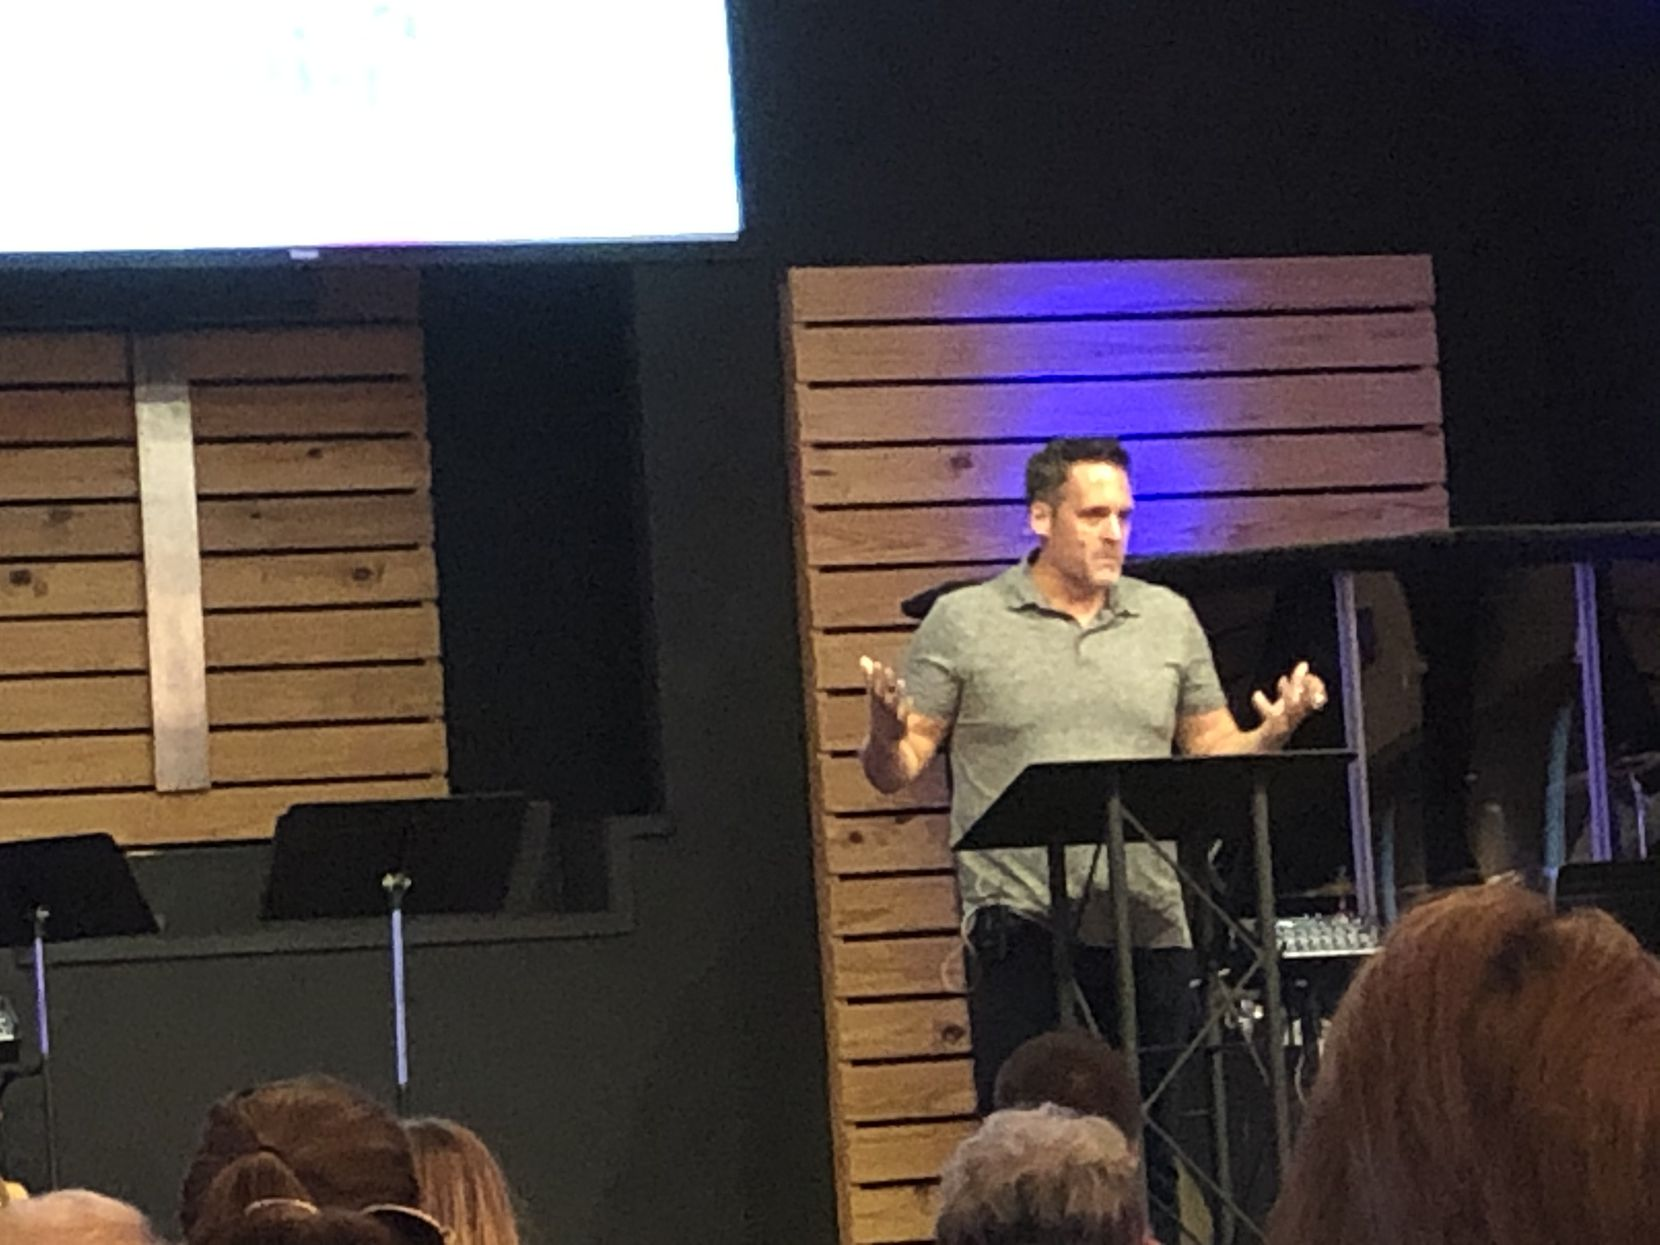 Pastor Jason Stover of Lonesome Dove Baptist Church in Southlake, one of the oldest churches in Texas, has increased attendance during his six years at the church.